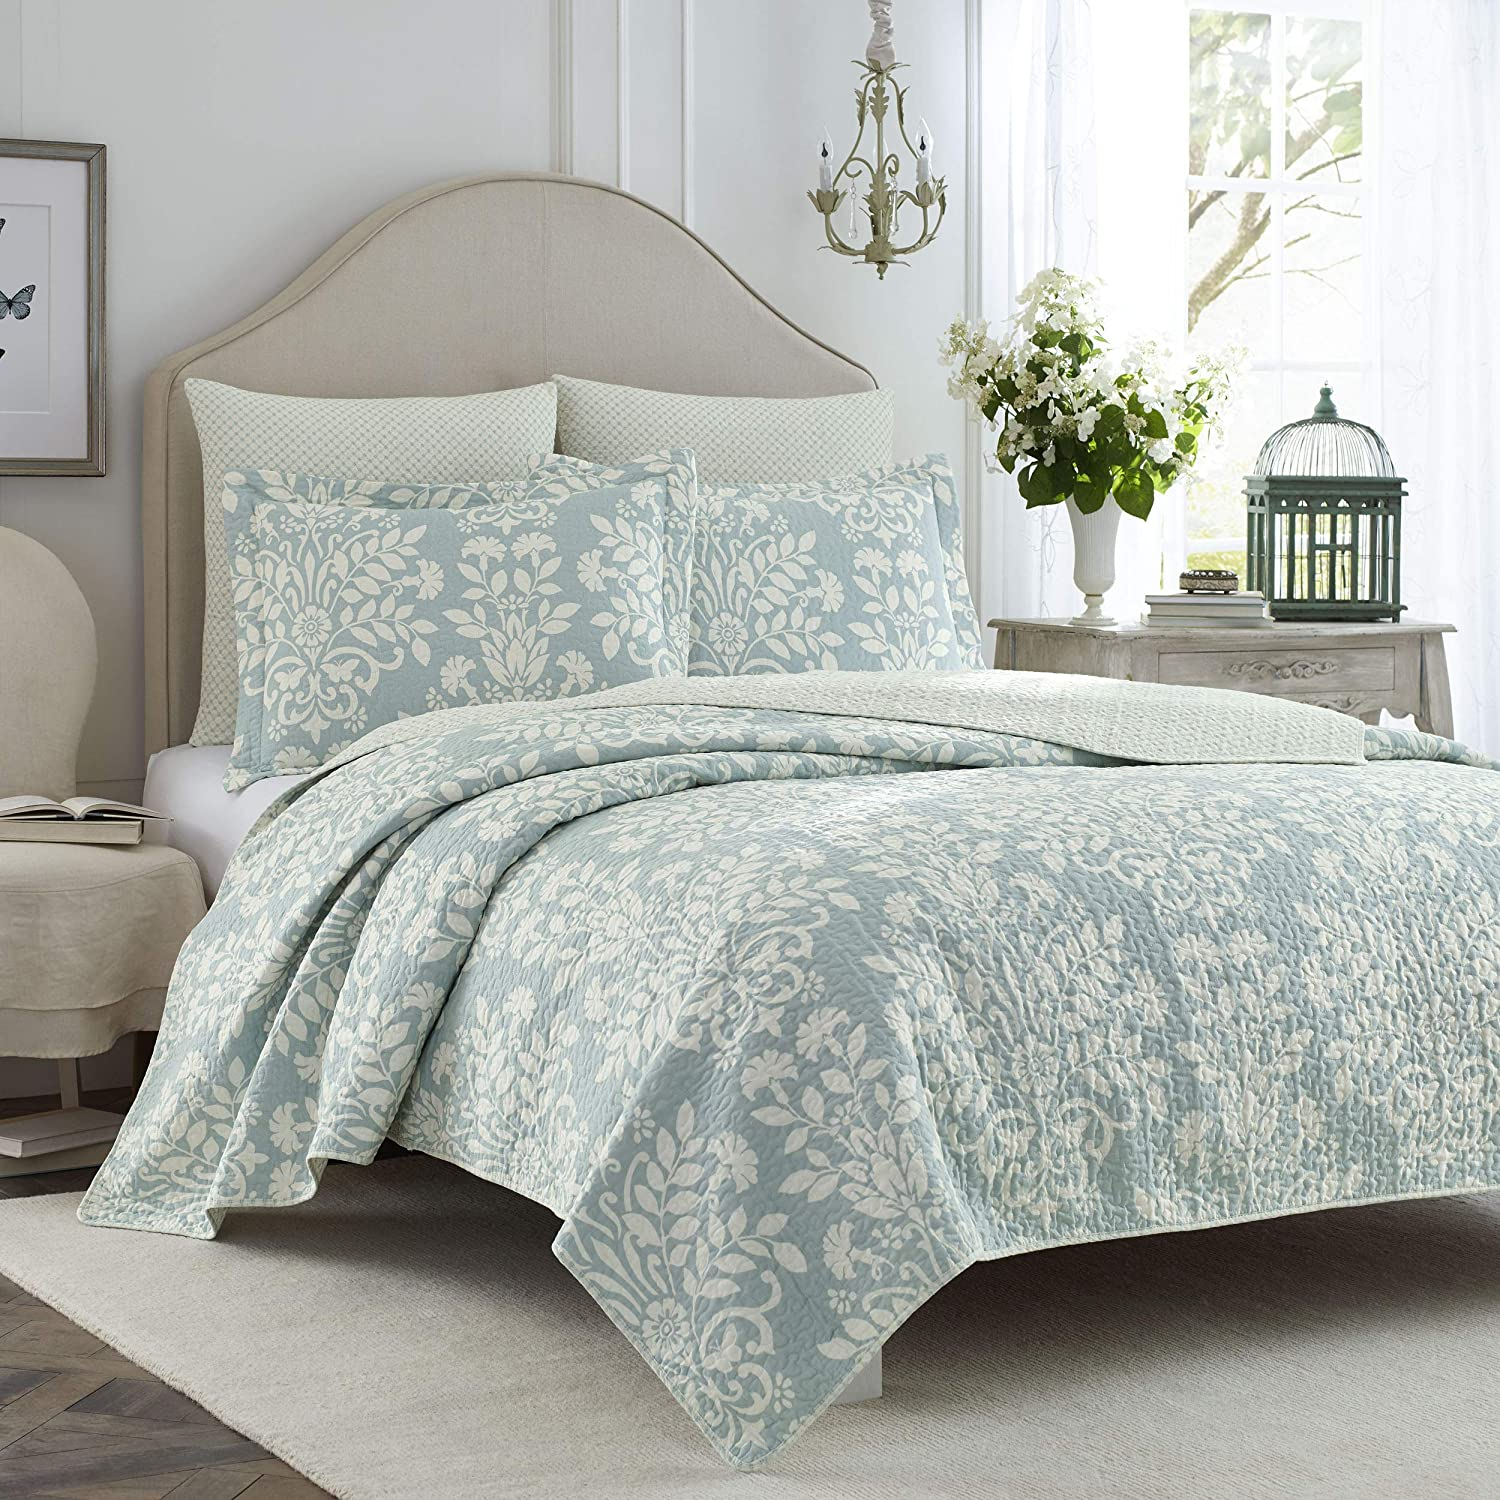 Laura Ashley Home | Rowland Collection Bedding